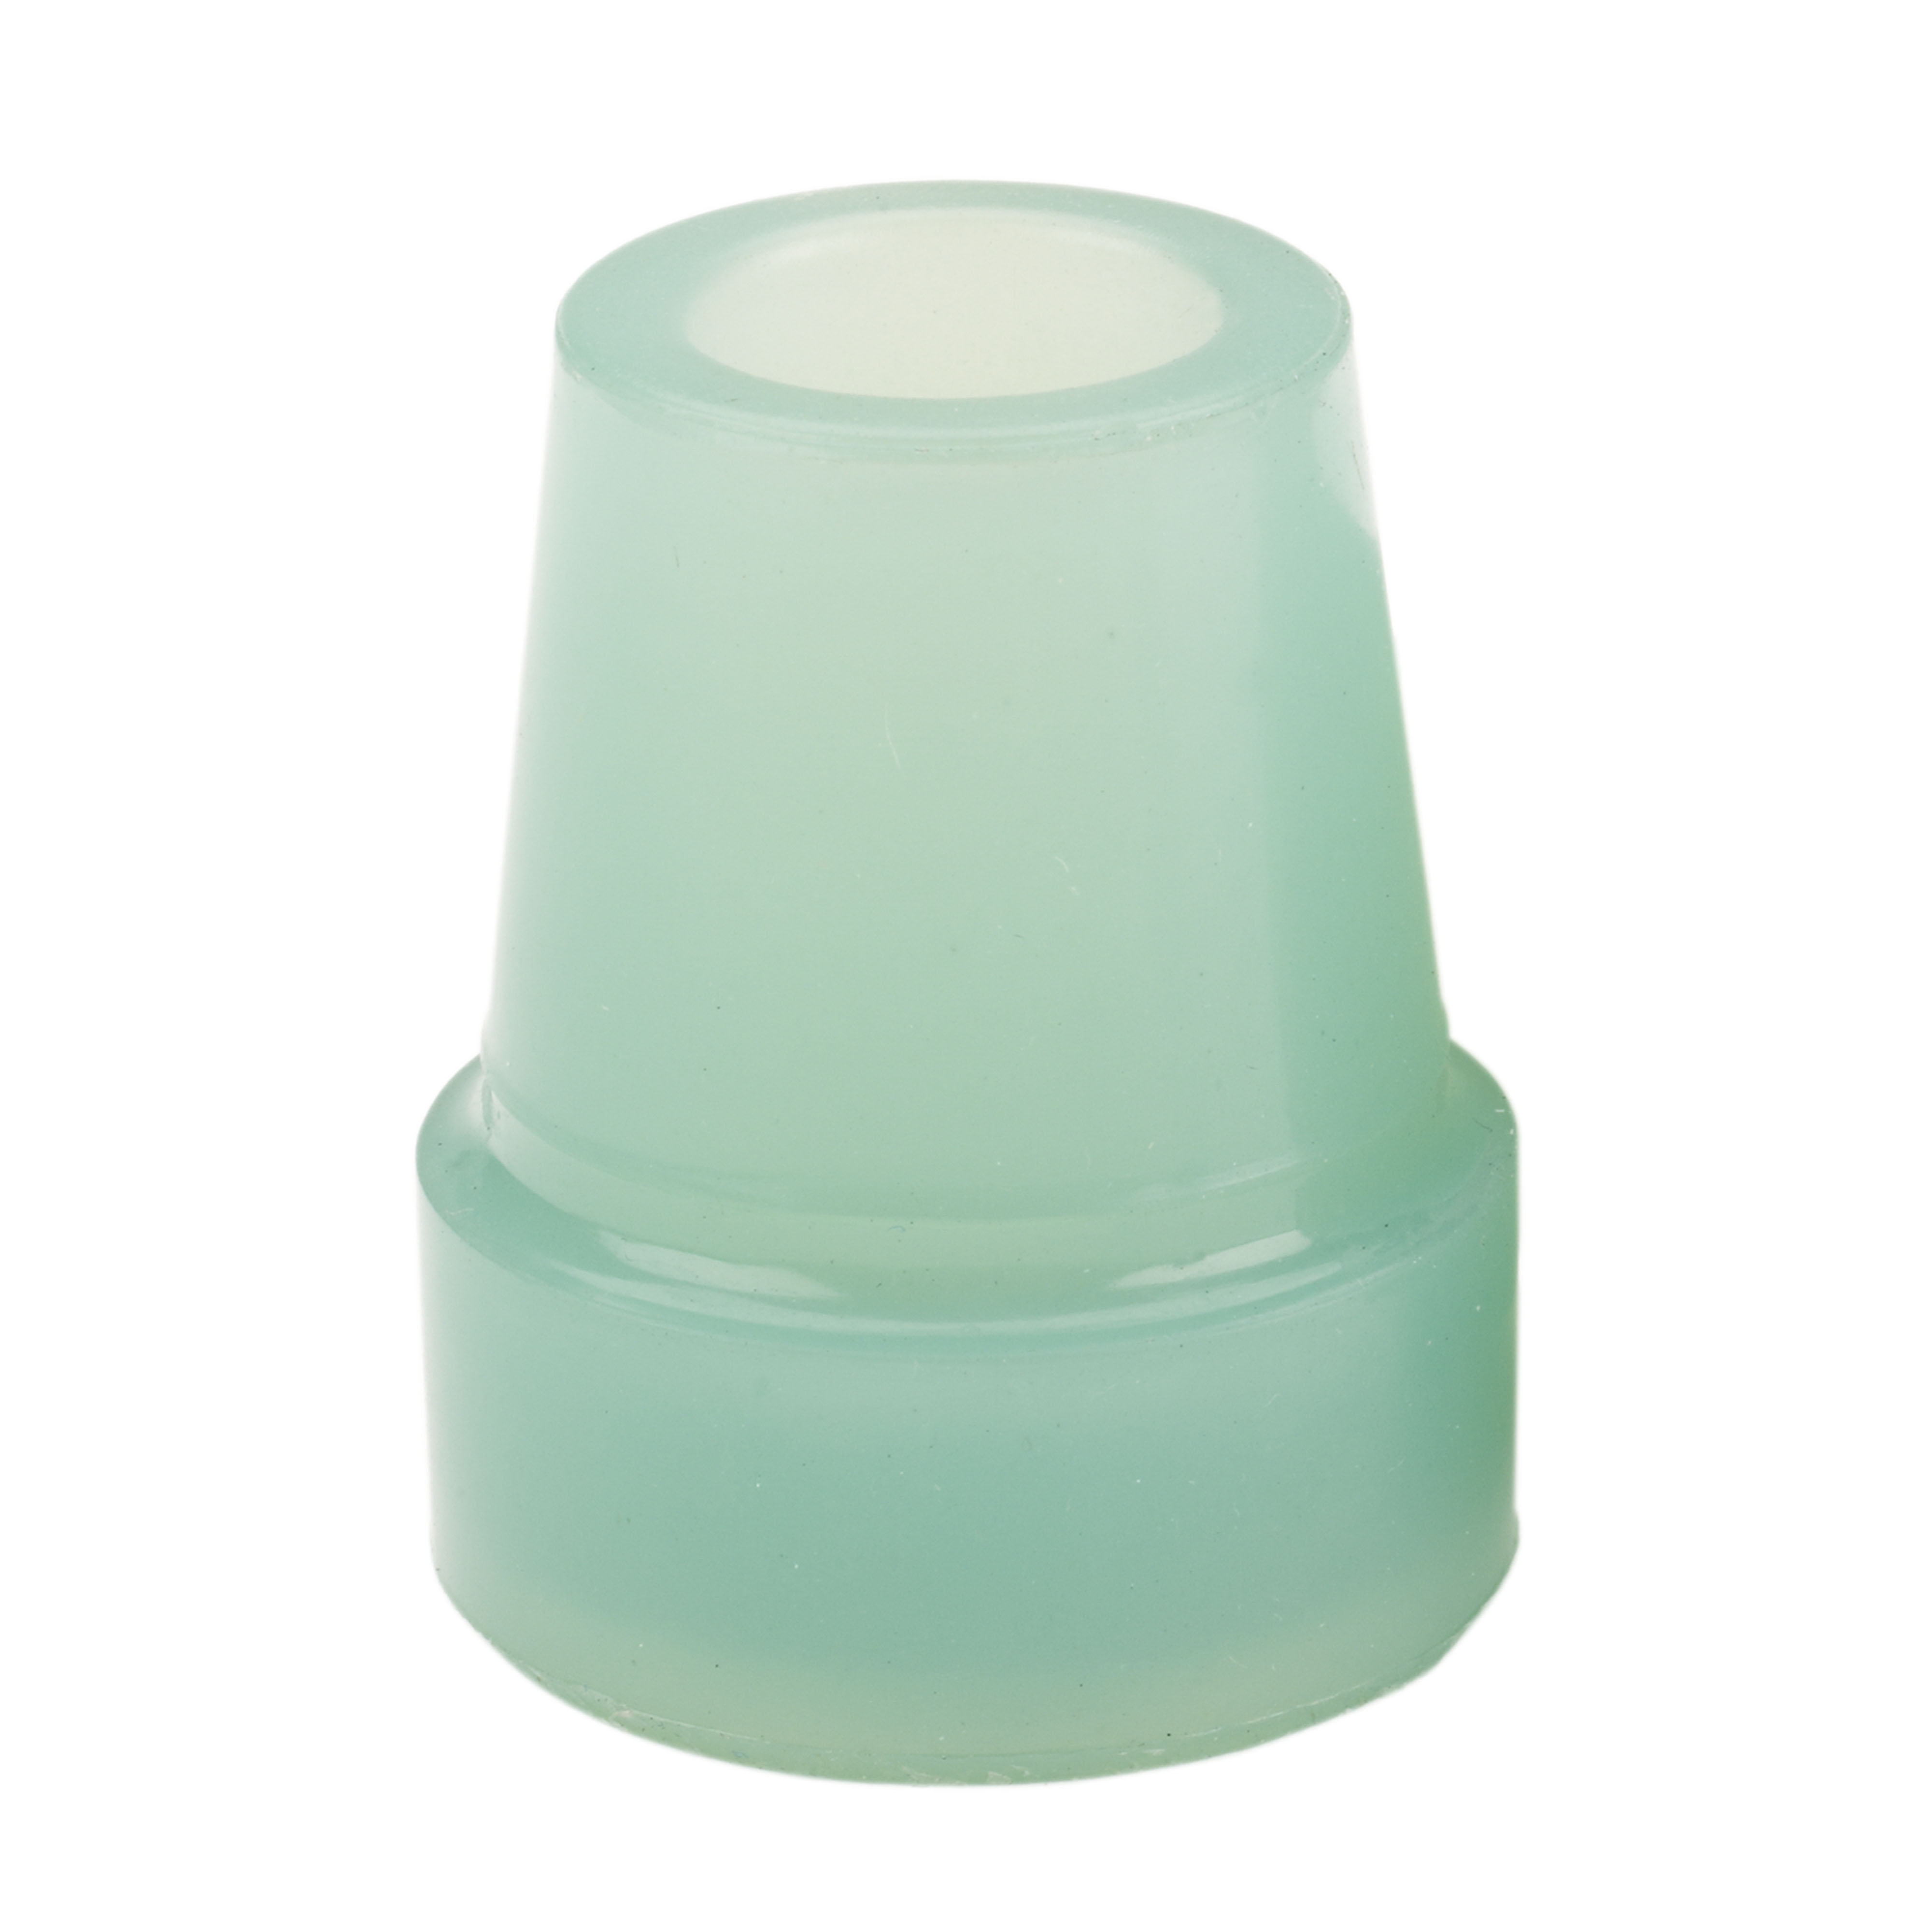 Drive Medical - Glow In The Dark Cane Tip, 3/4